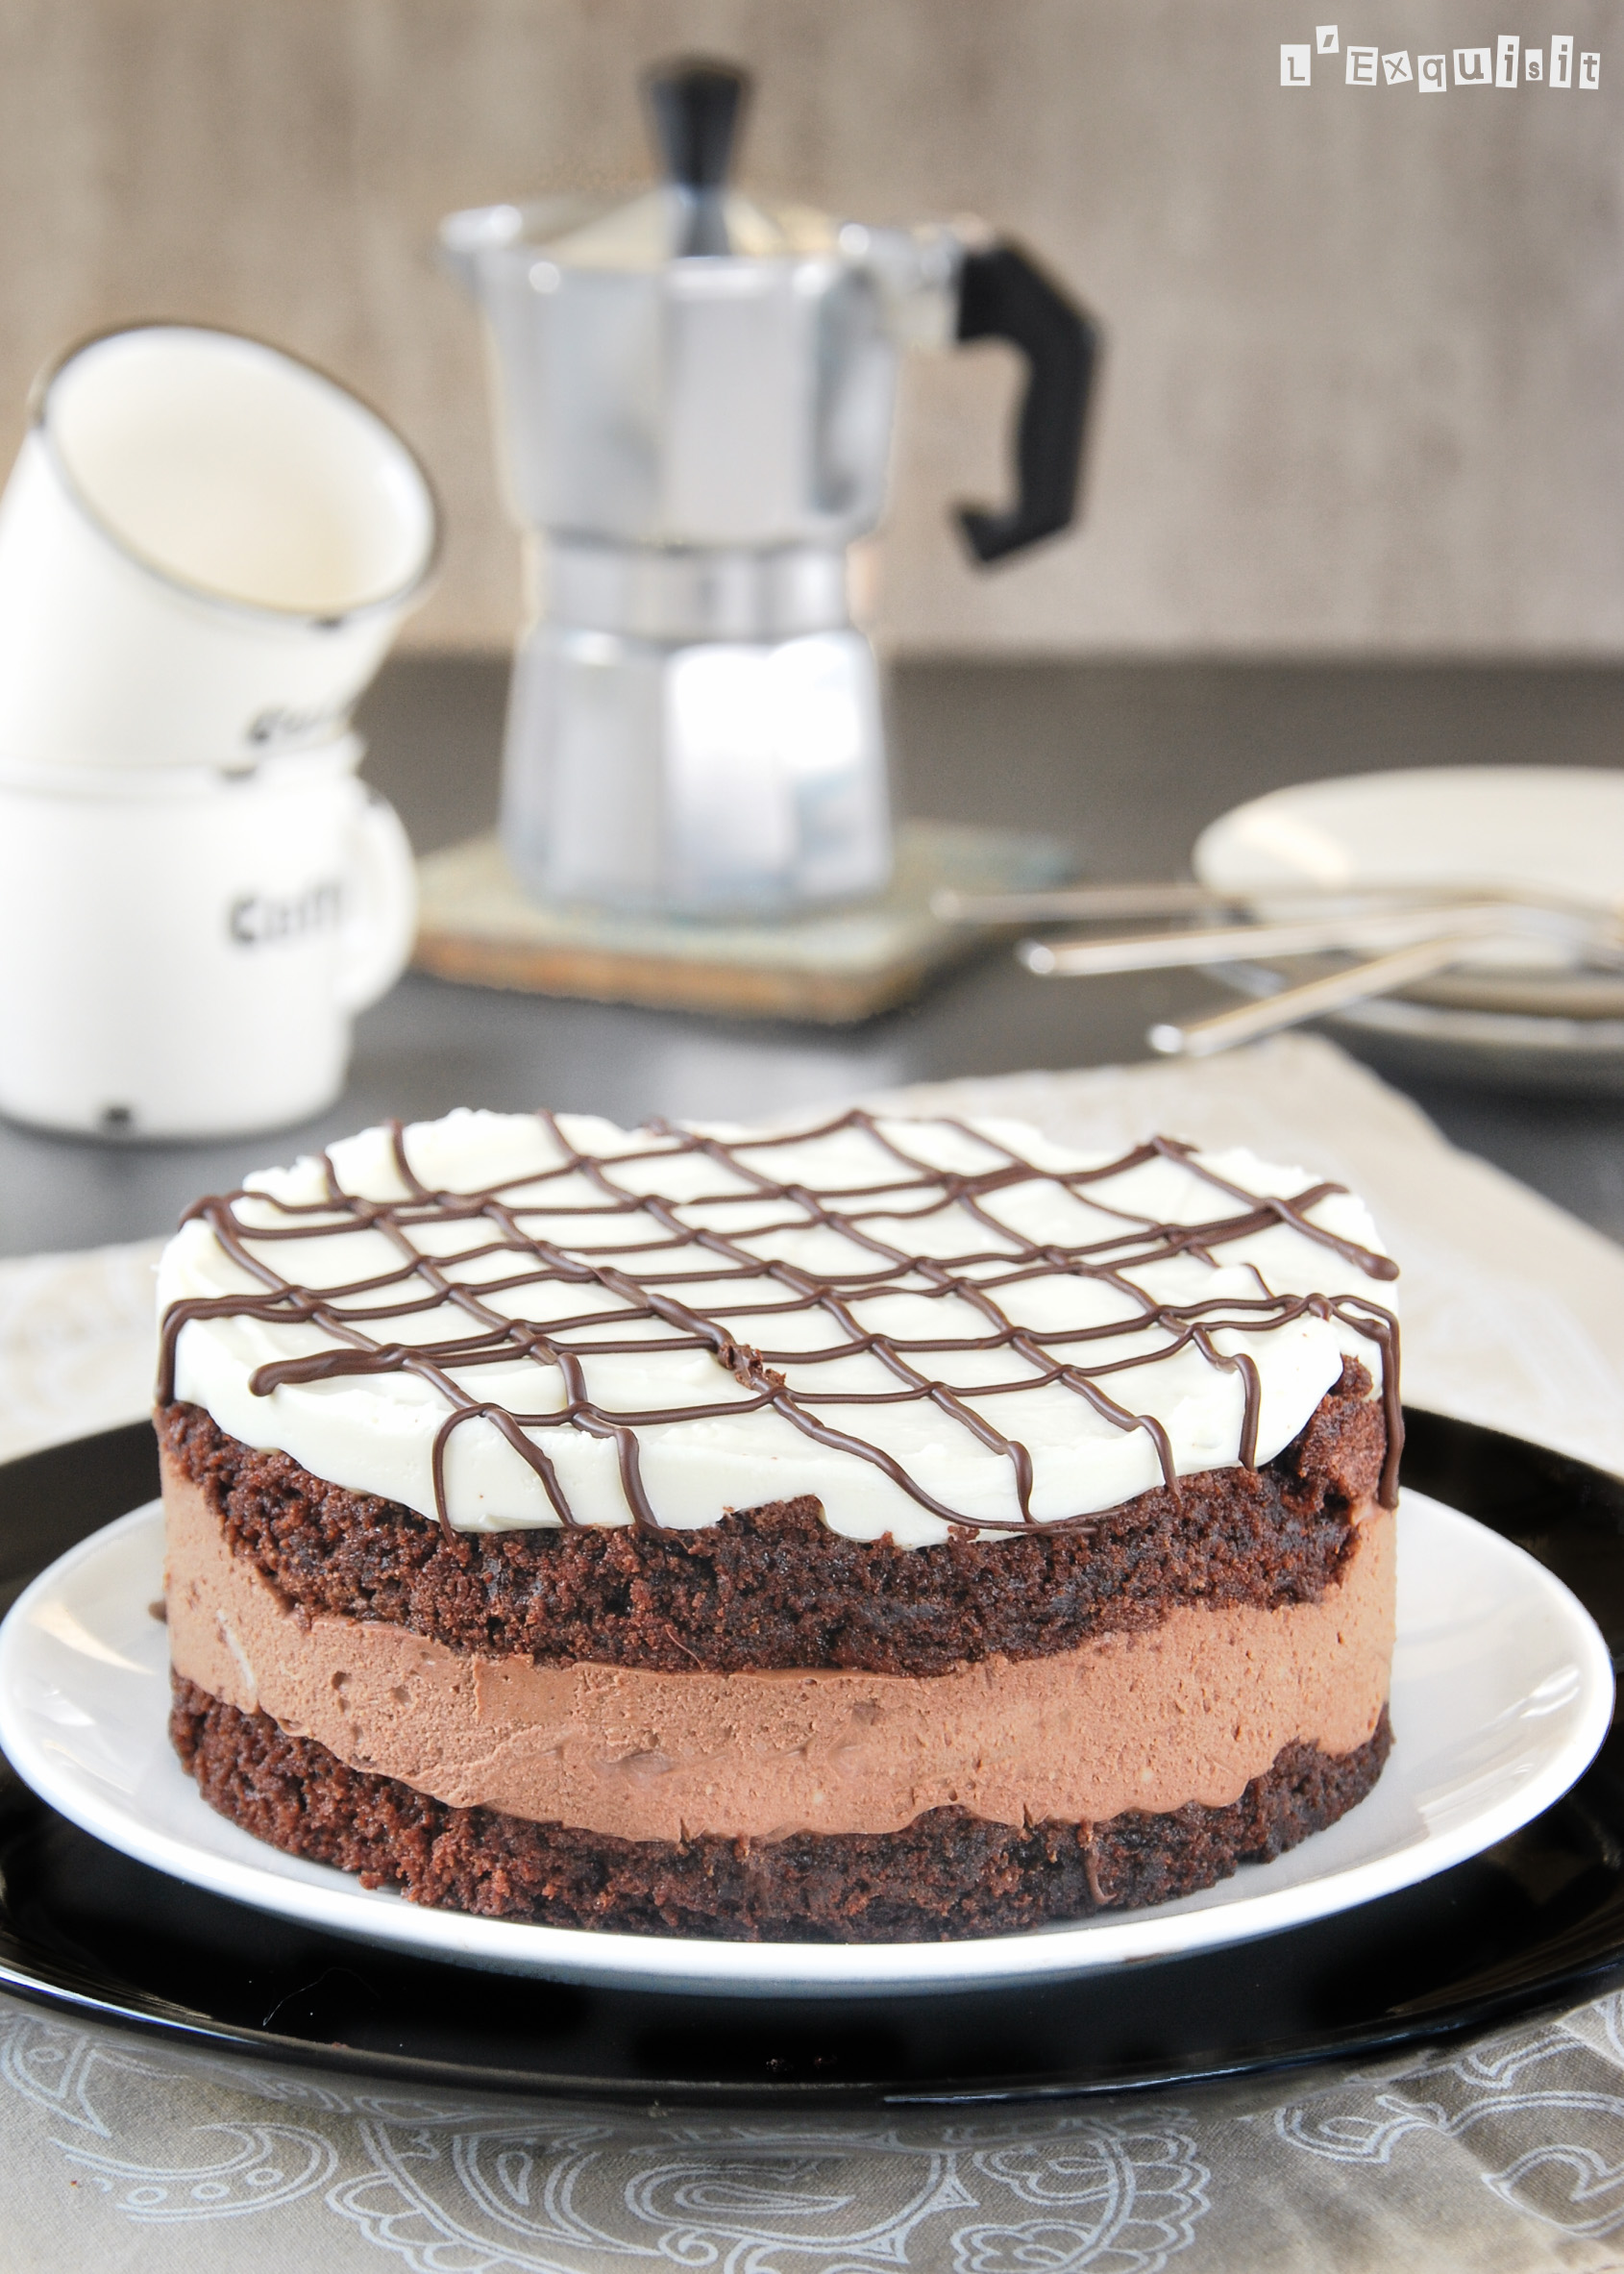 Tarta de chocolate y mascarpone